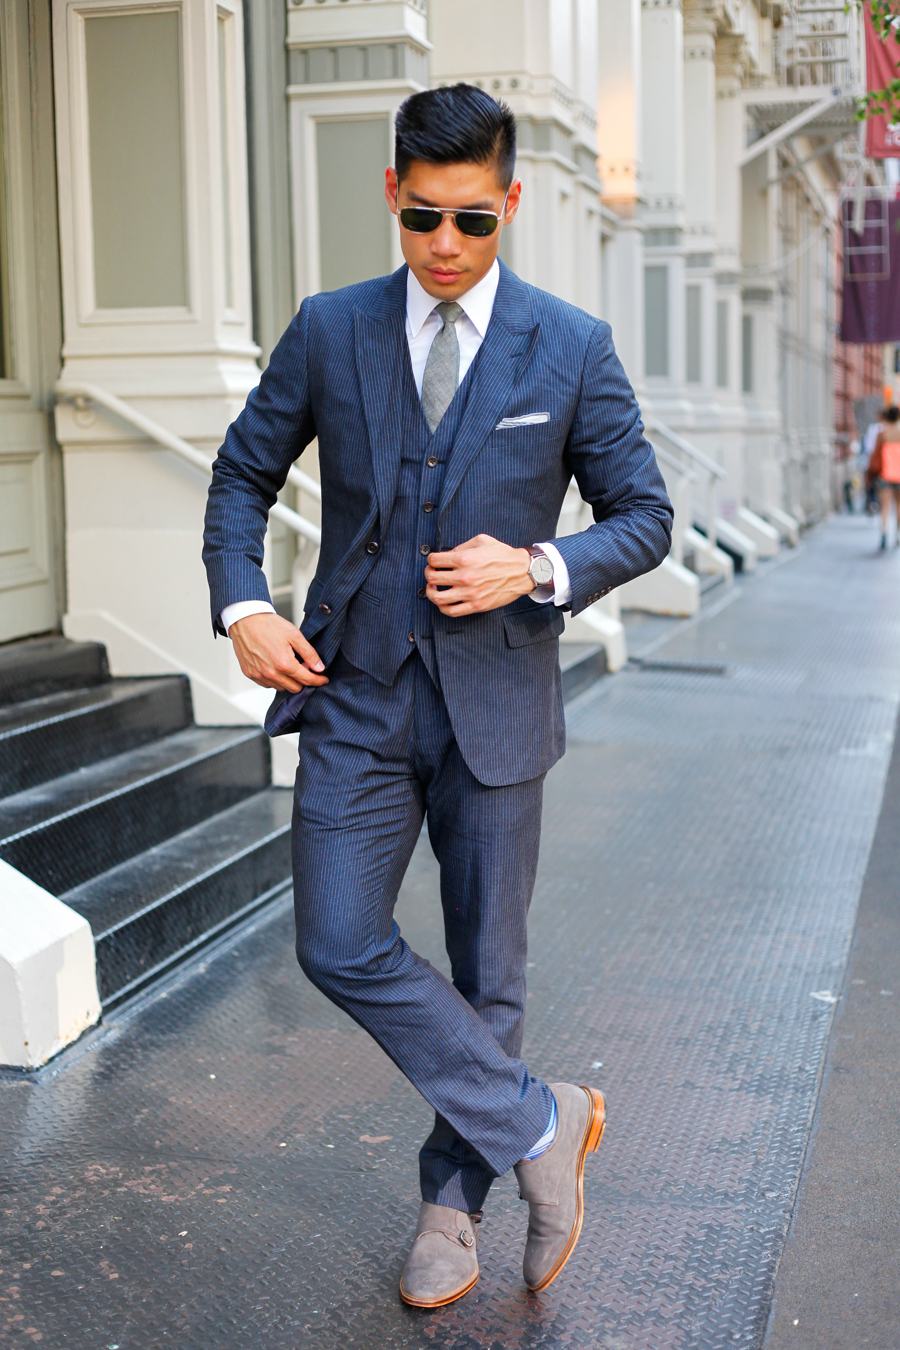 Levitate Style - Pinstripe Two Ways | Bonobos Navy Pinstripe Three Piece Cotton Suit Dressed Up & Dressed Down, Banana Republic Double Monk Strap, Jack Purcell Converse White Sneakers